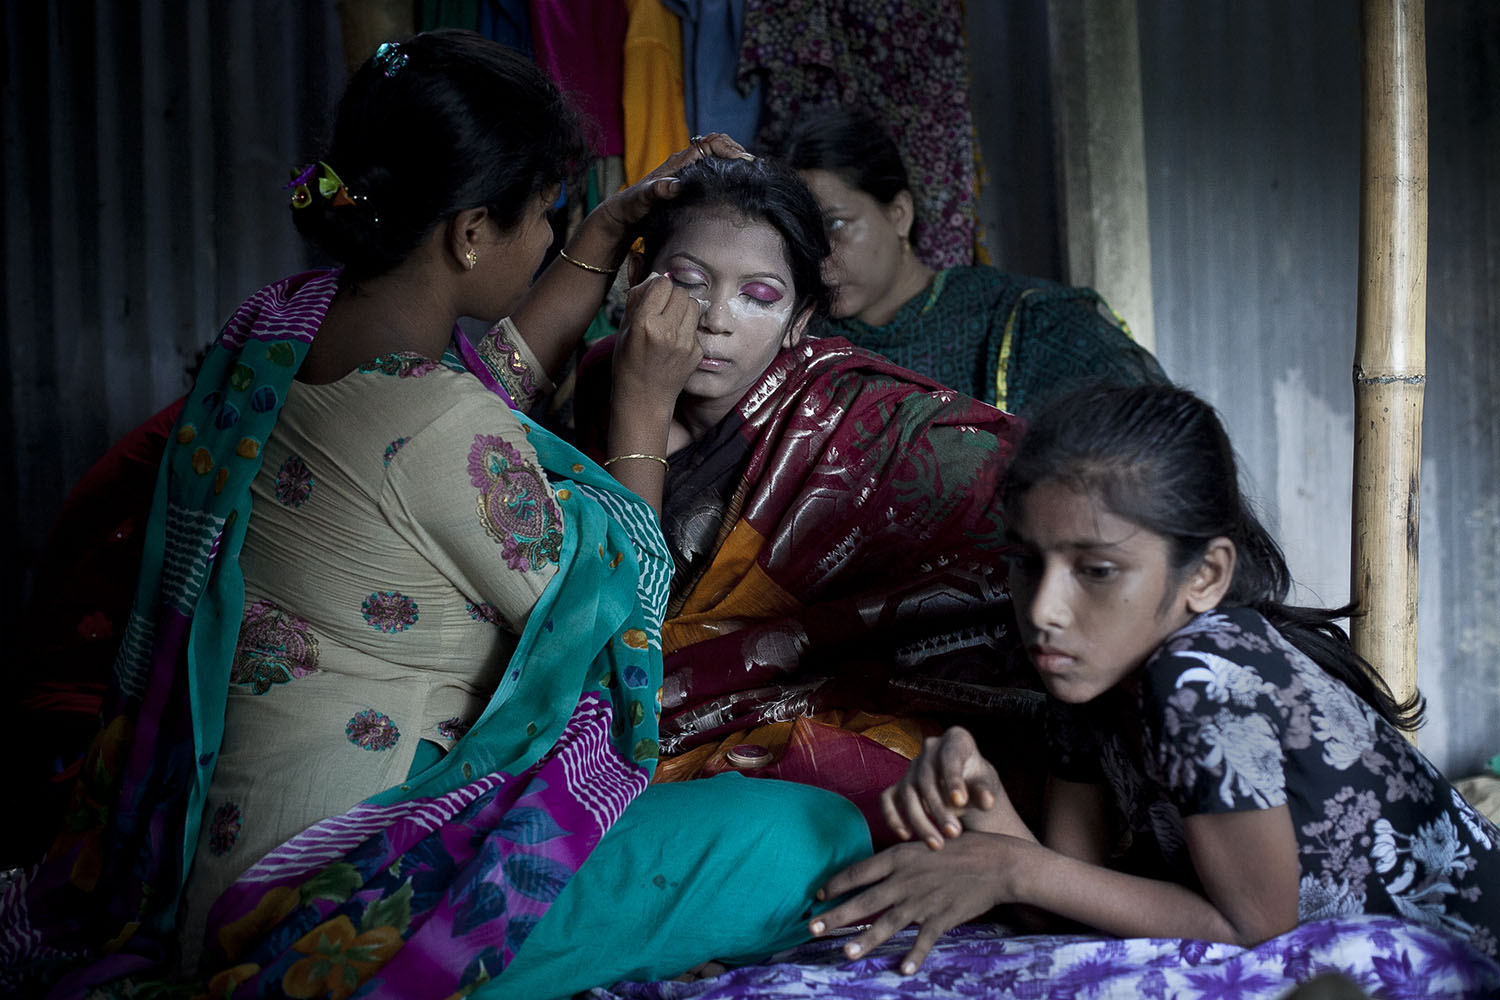 13 year old Runa Akhter has her makeup done by her friends the day of her wedding to a 29 year old man